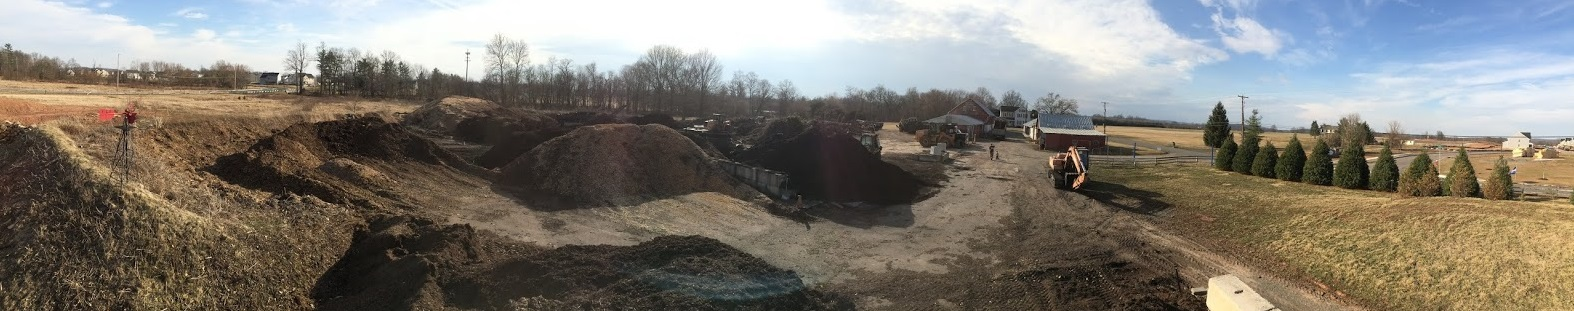 WR Friel Excavating Pottstown PA Excavation